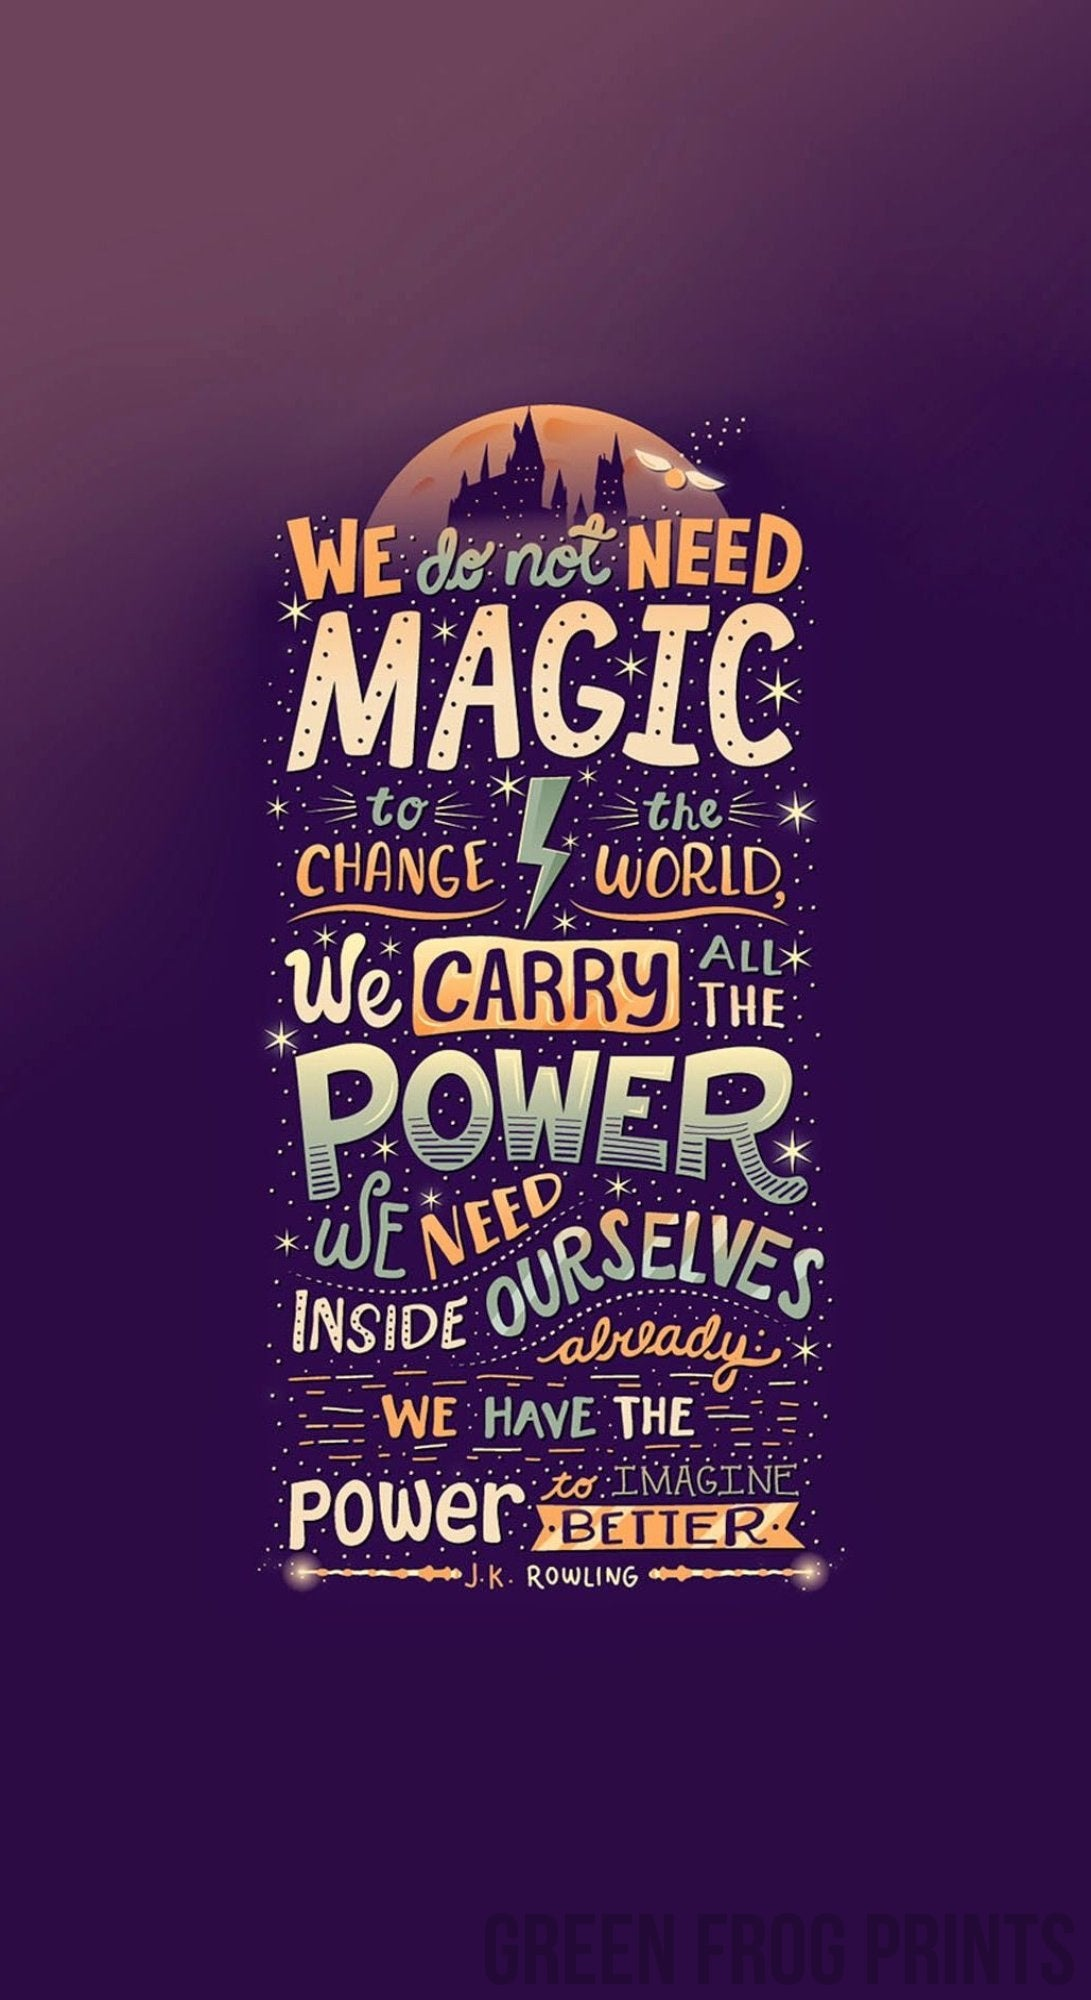 graphic regarding Printable Harry Potter Quotes called We Bring All The Electrical power Harry Potter Quotation Poster Print Reward Suggestions for JK Rowling Potter Lovers